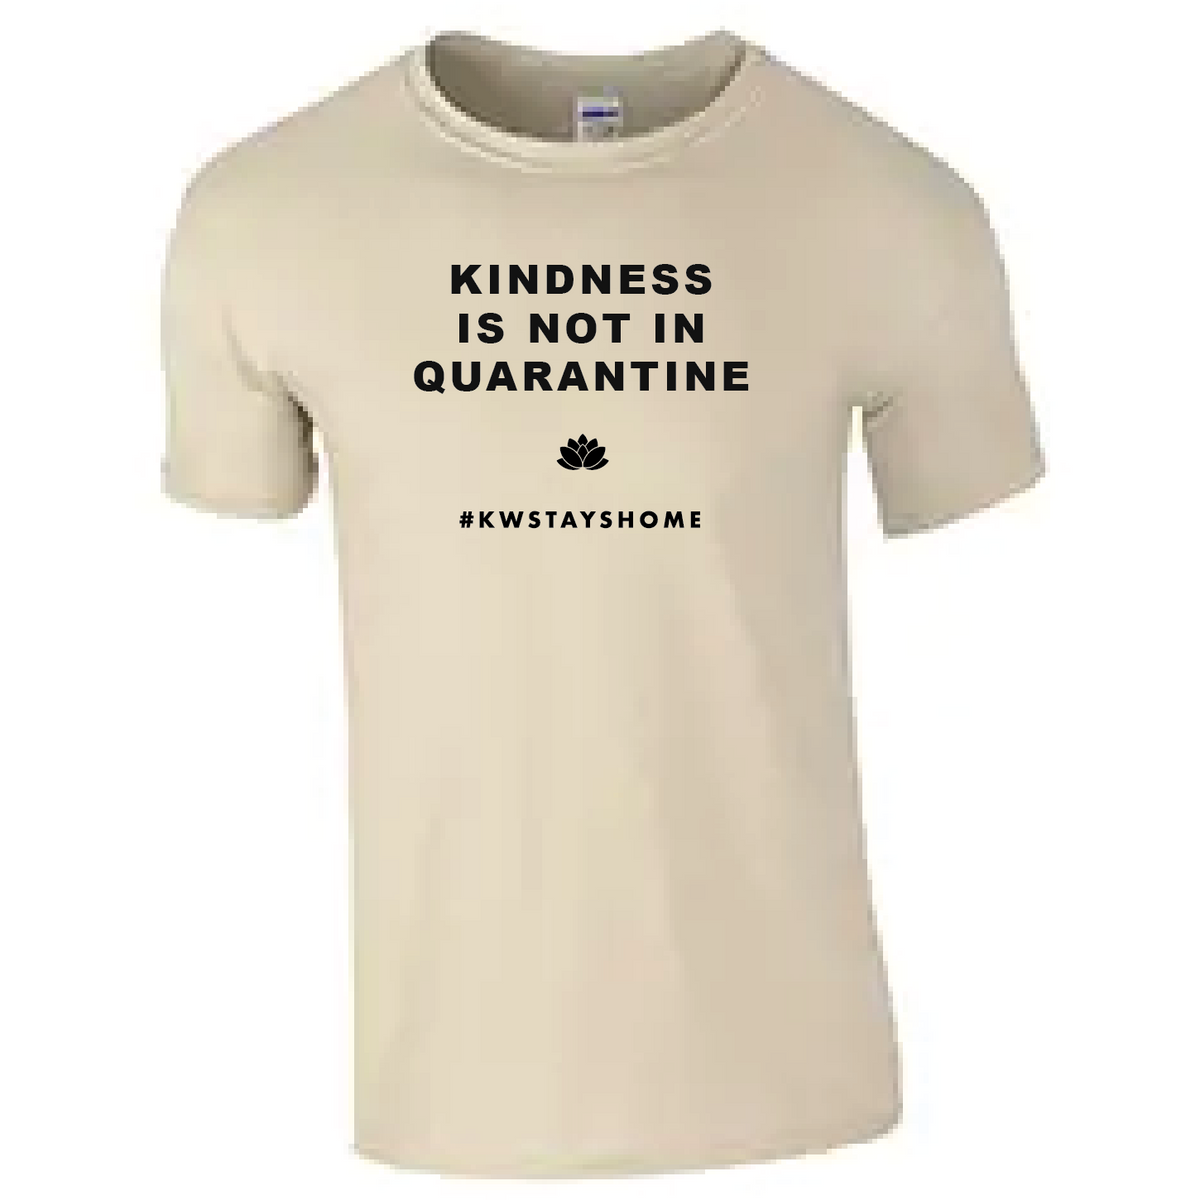 KINDNESS IS NOT IN QUARANTINE